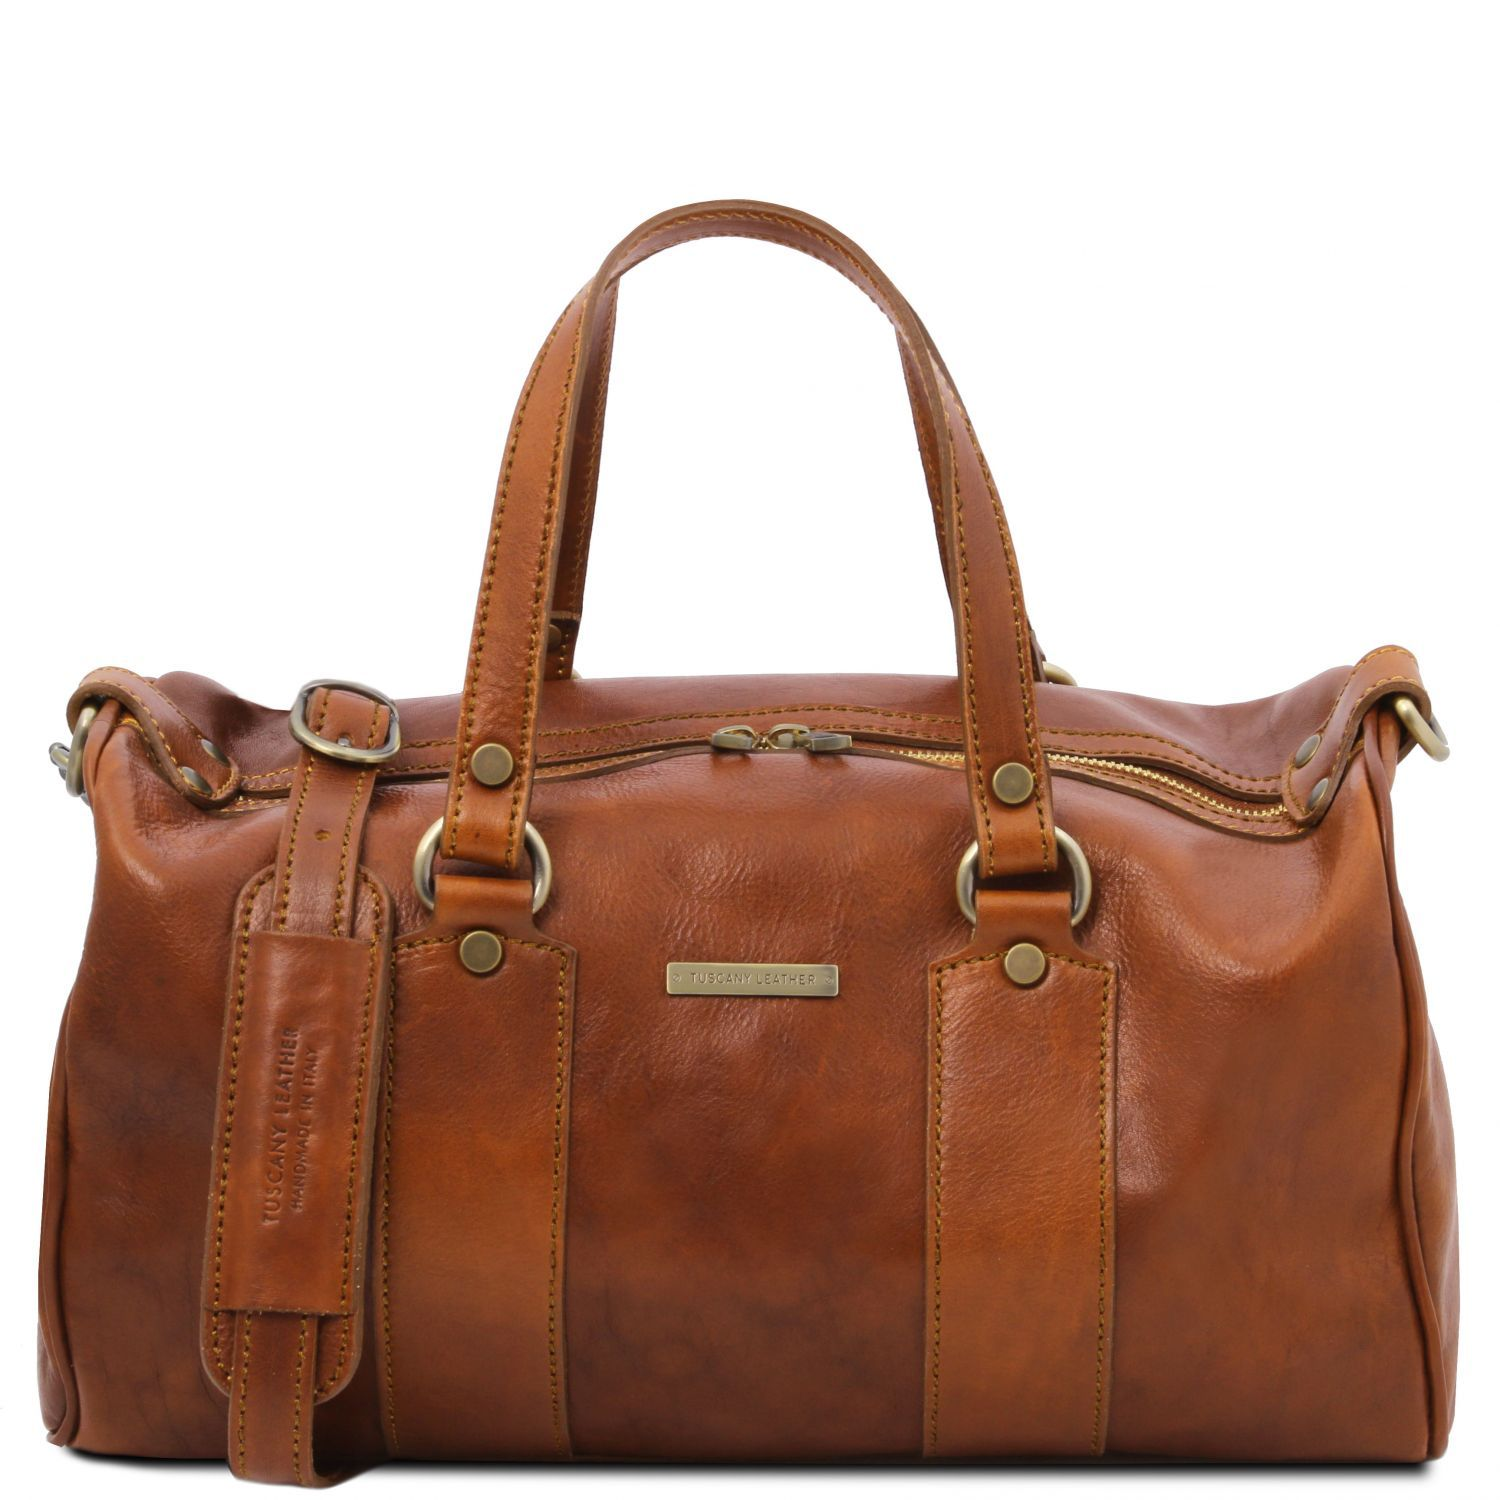 Lucrezia - Leather maxi duffle bag - TL141977 - Leather handbags | DILUSSOBAGS